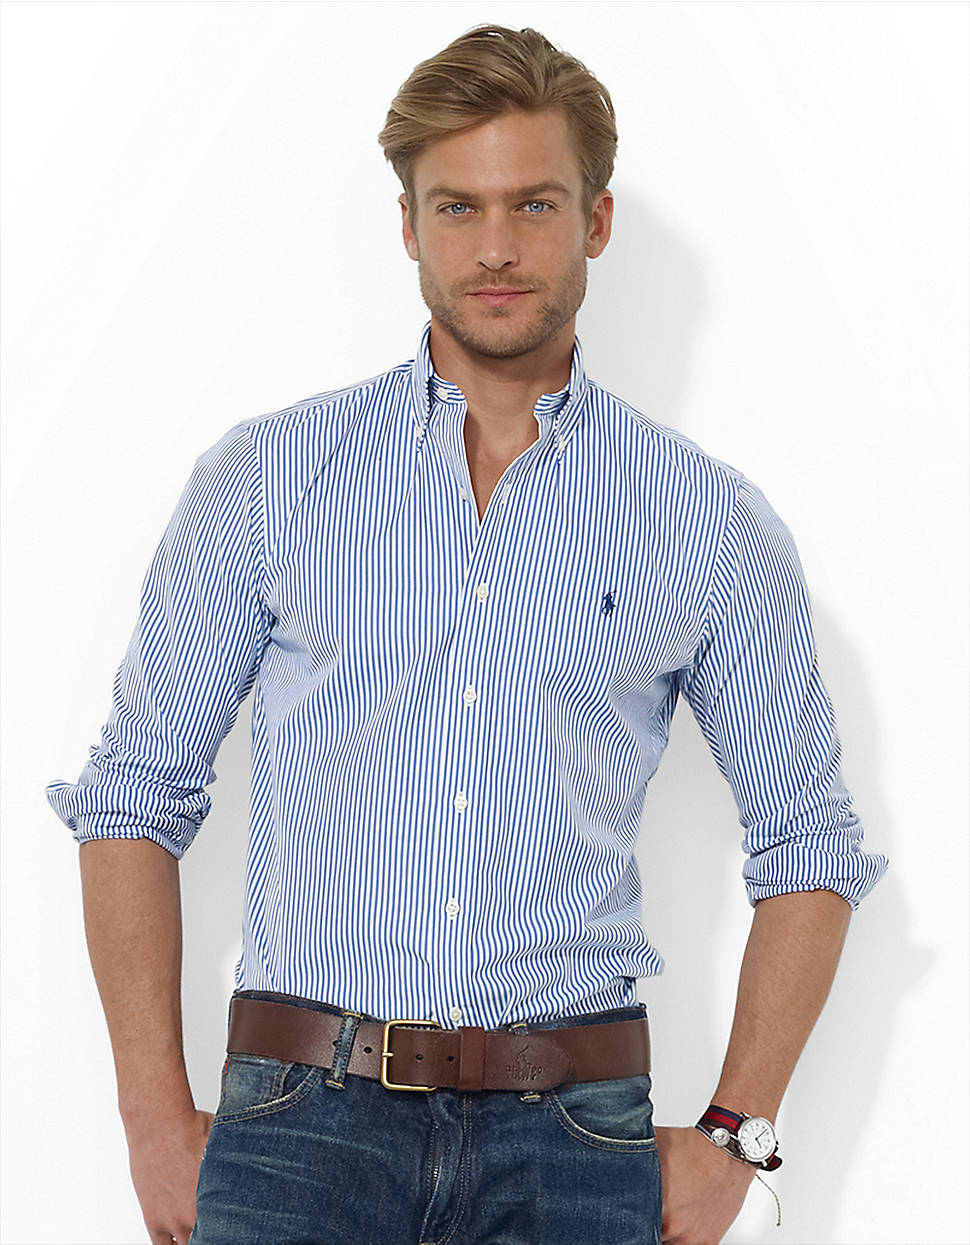 Polo ralph lauren custom fit striped sport shirt in blue for Blue striped shirt mens